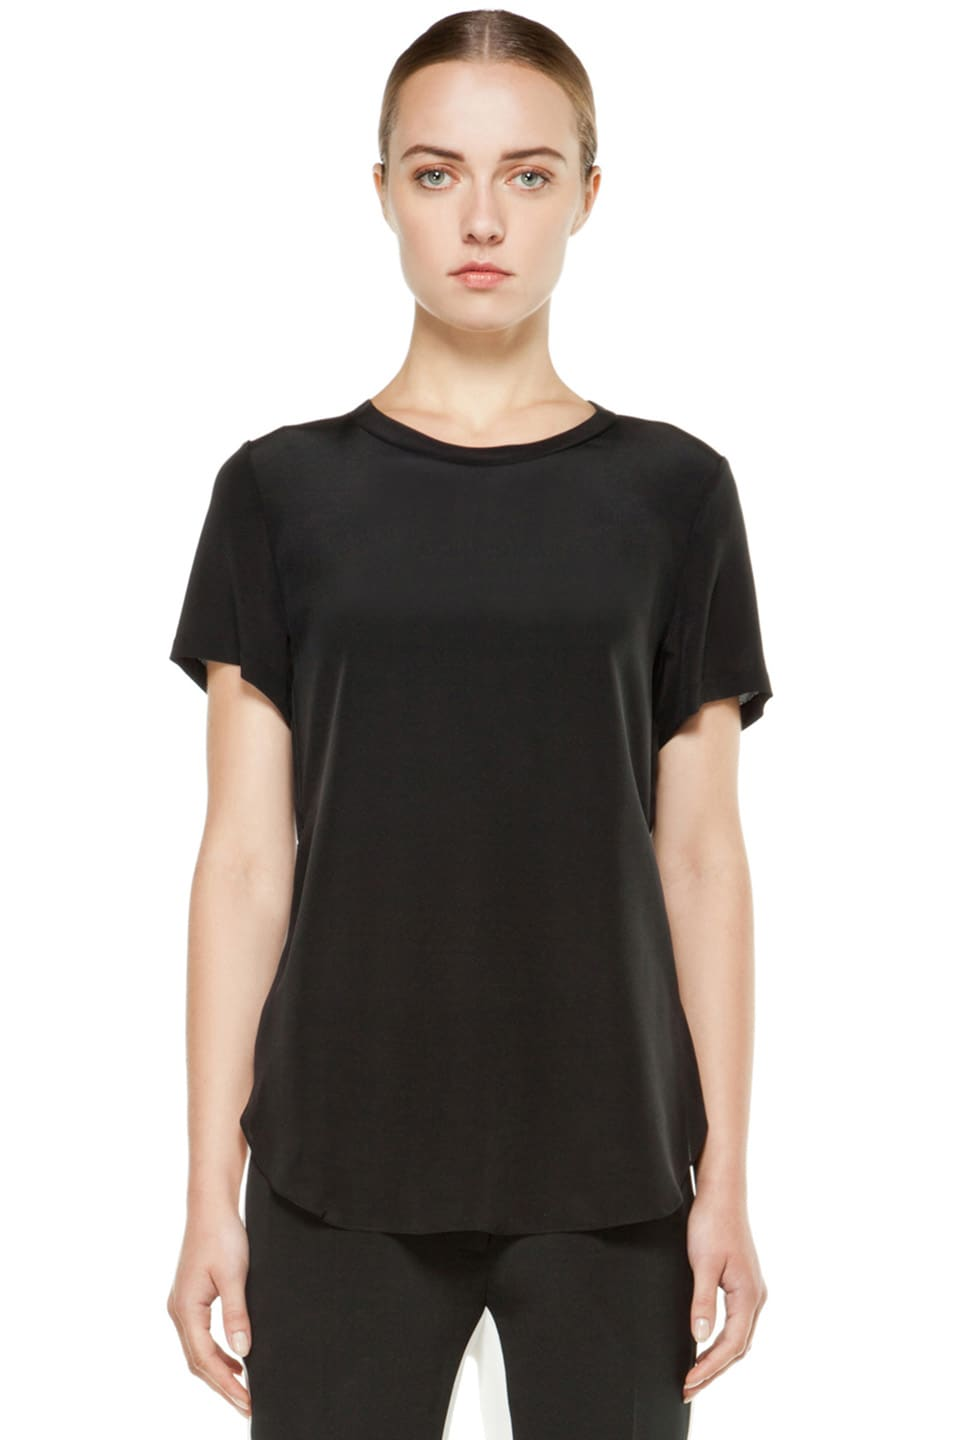 Image 1 of 3.1 phillip lim Silk Overlapped Side Tee in Black